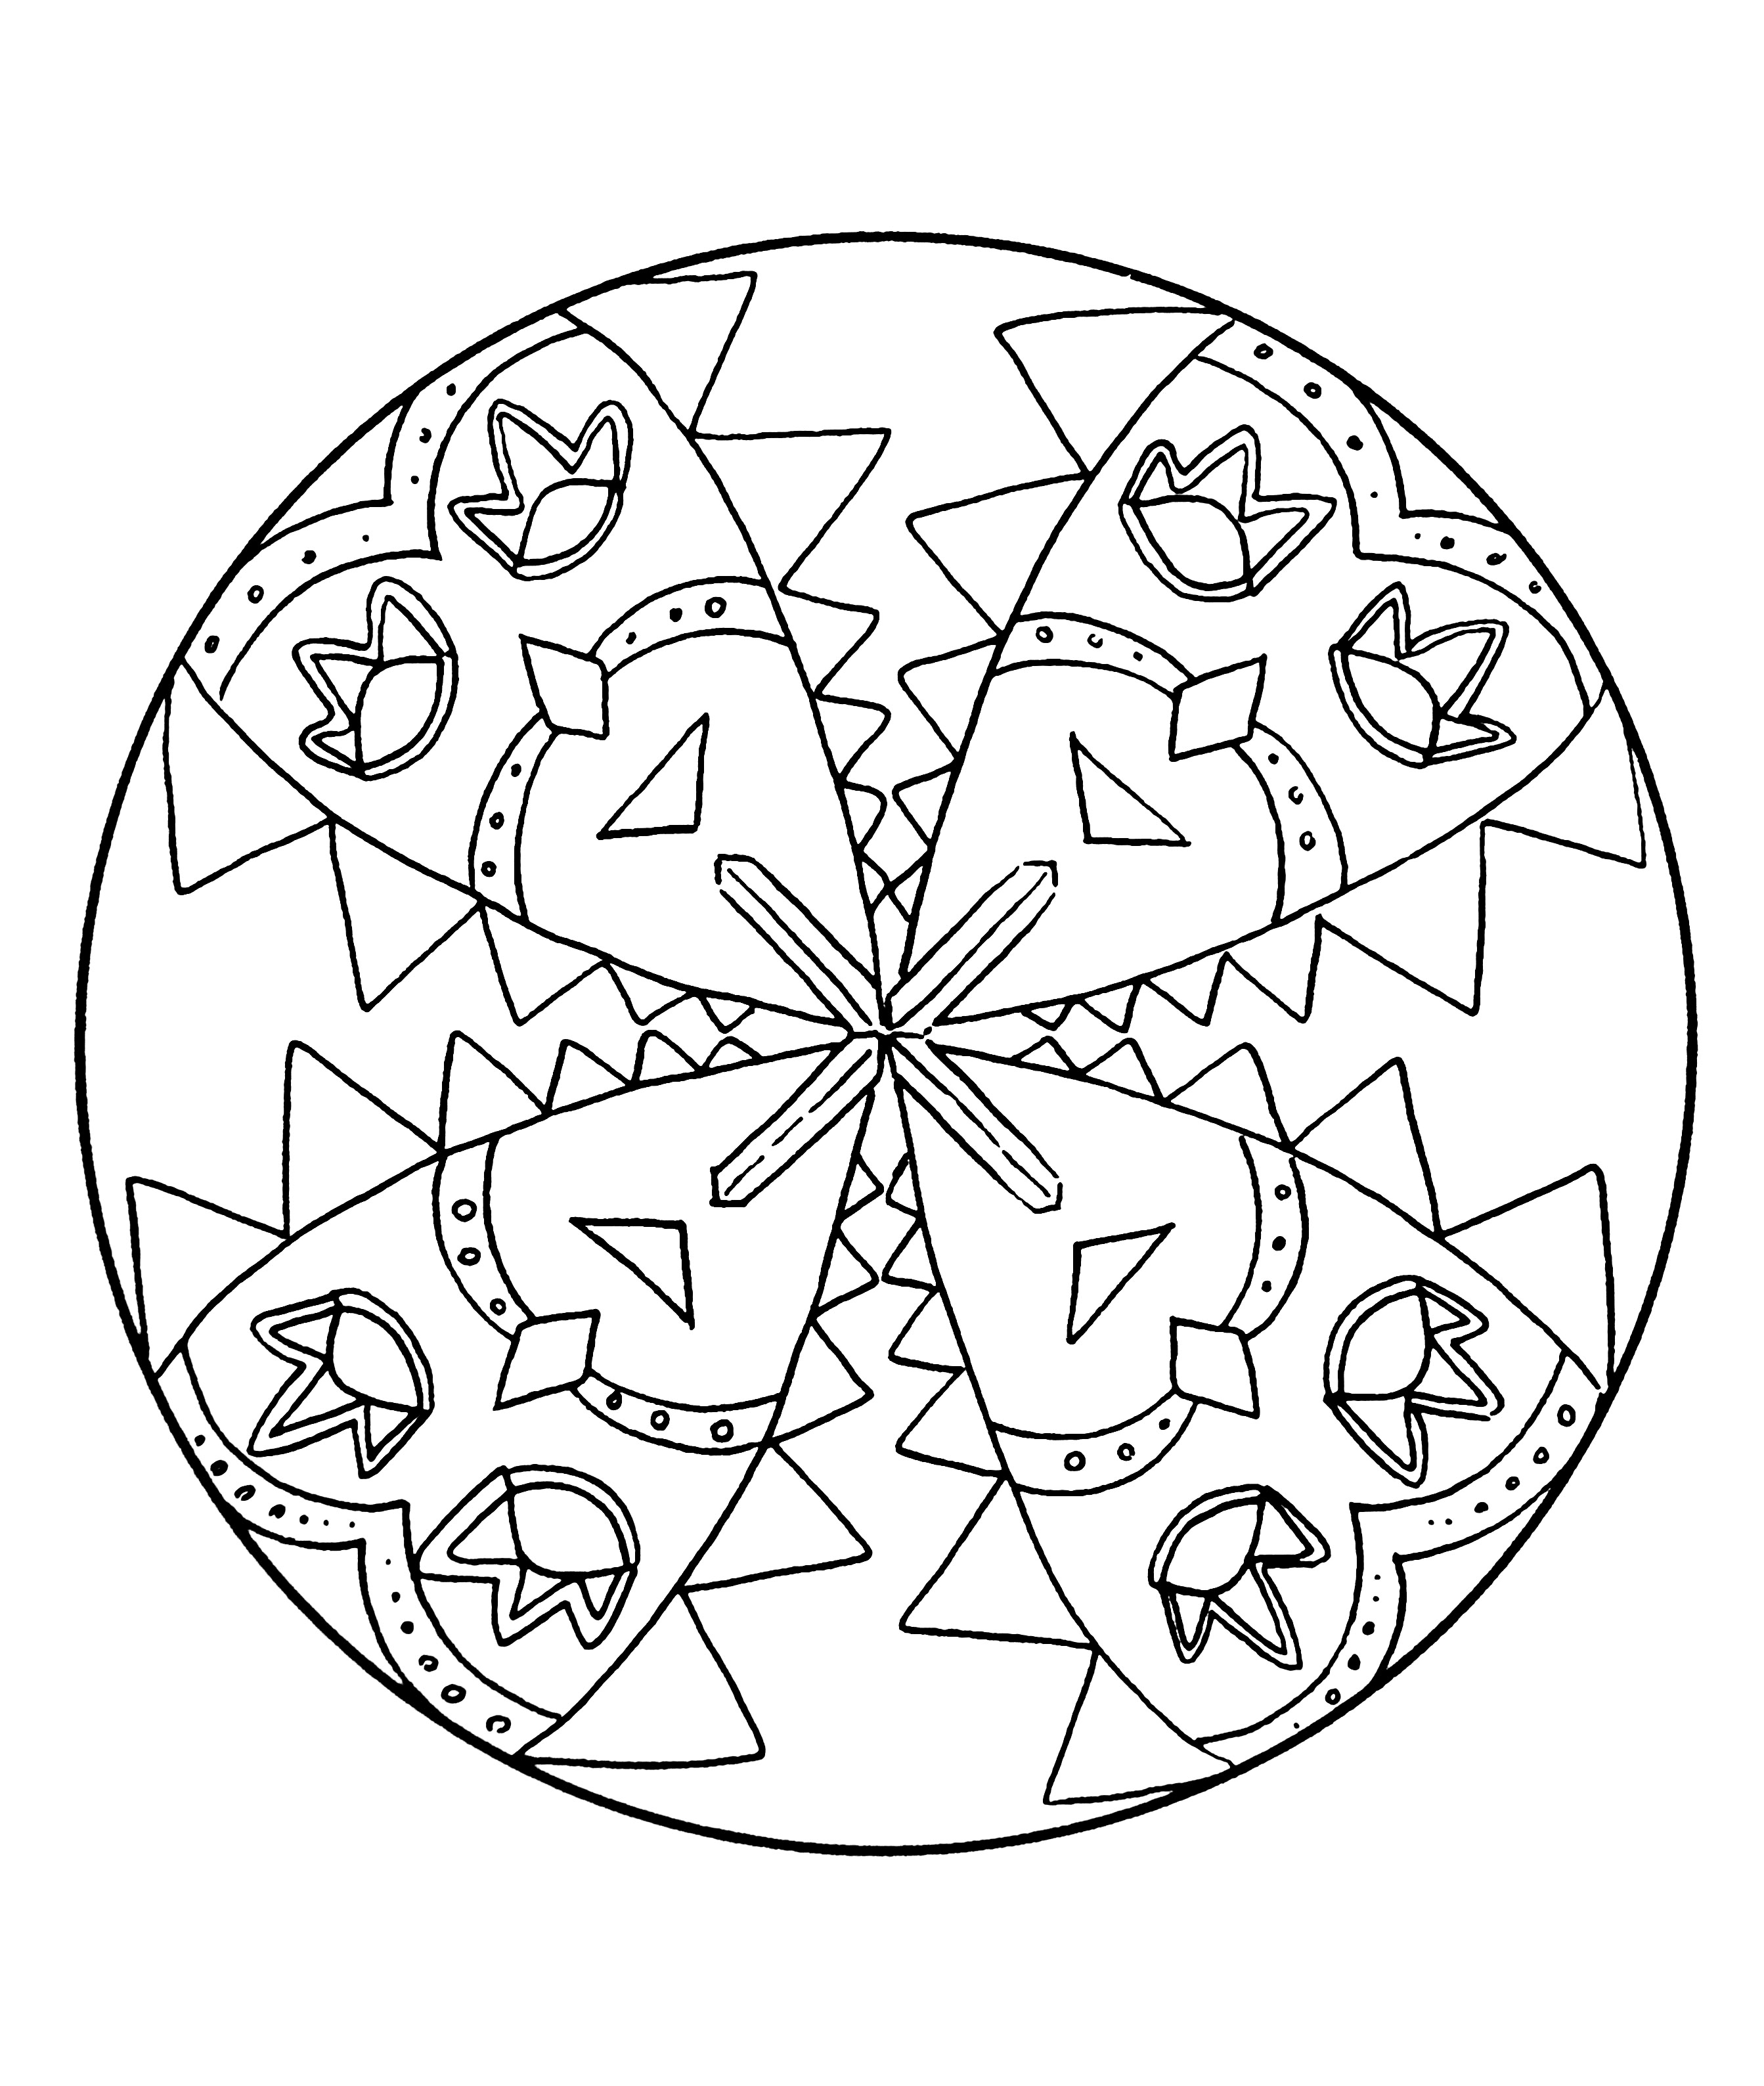 Coloring page with masks